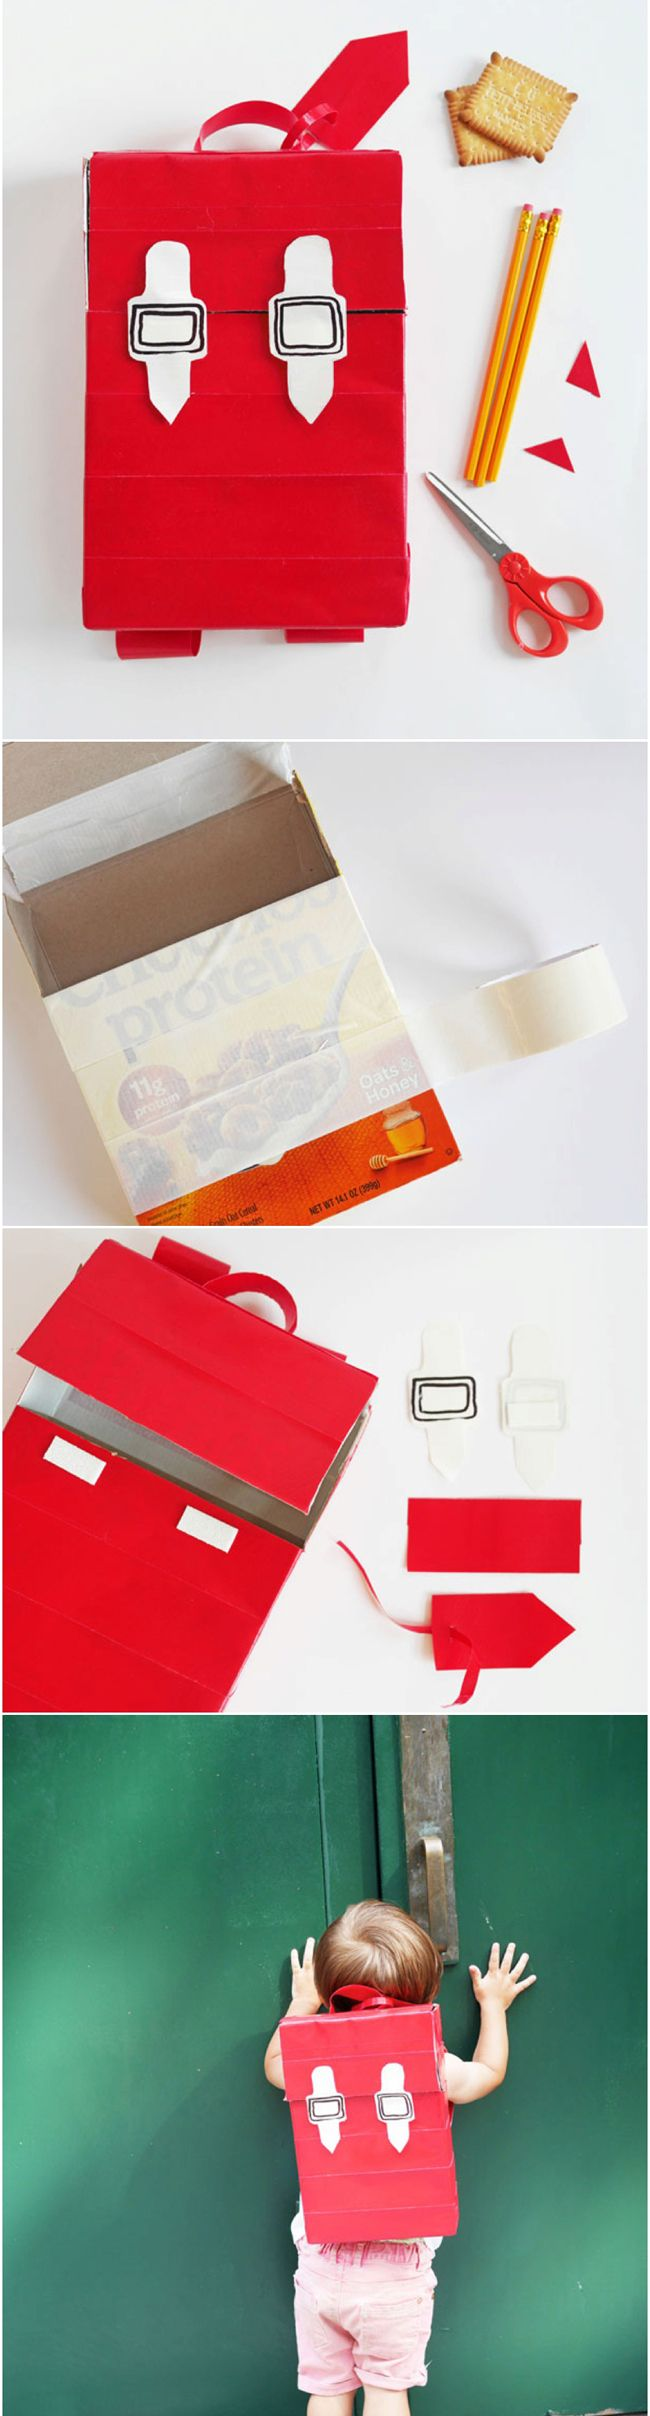 Recycled Cereal Box Backpack. Make an adorable backpack ...